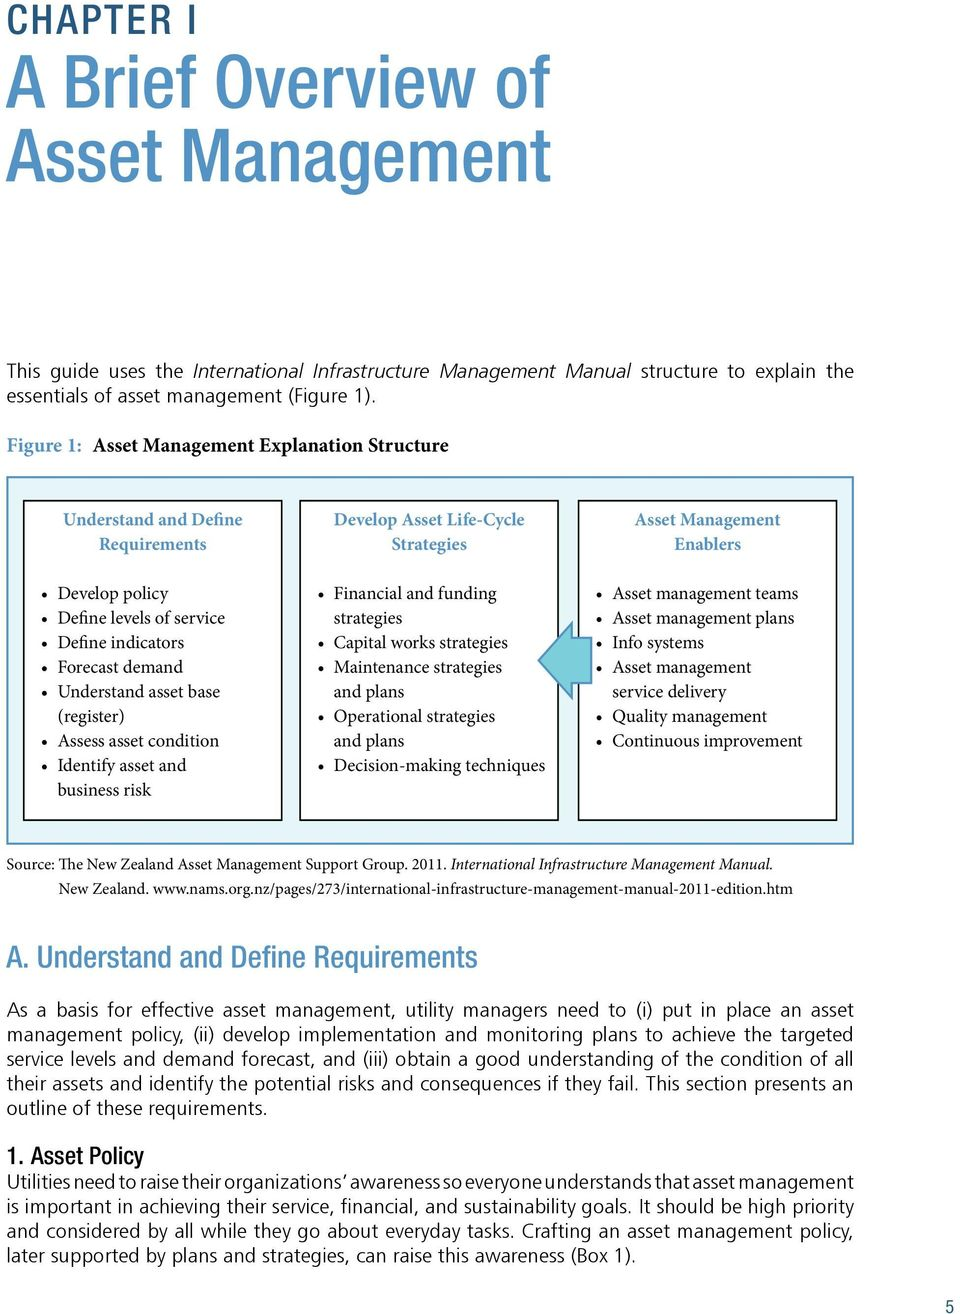 Operational asset management is an effective planning tool 4